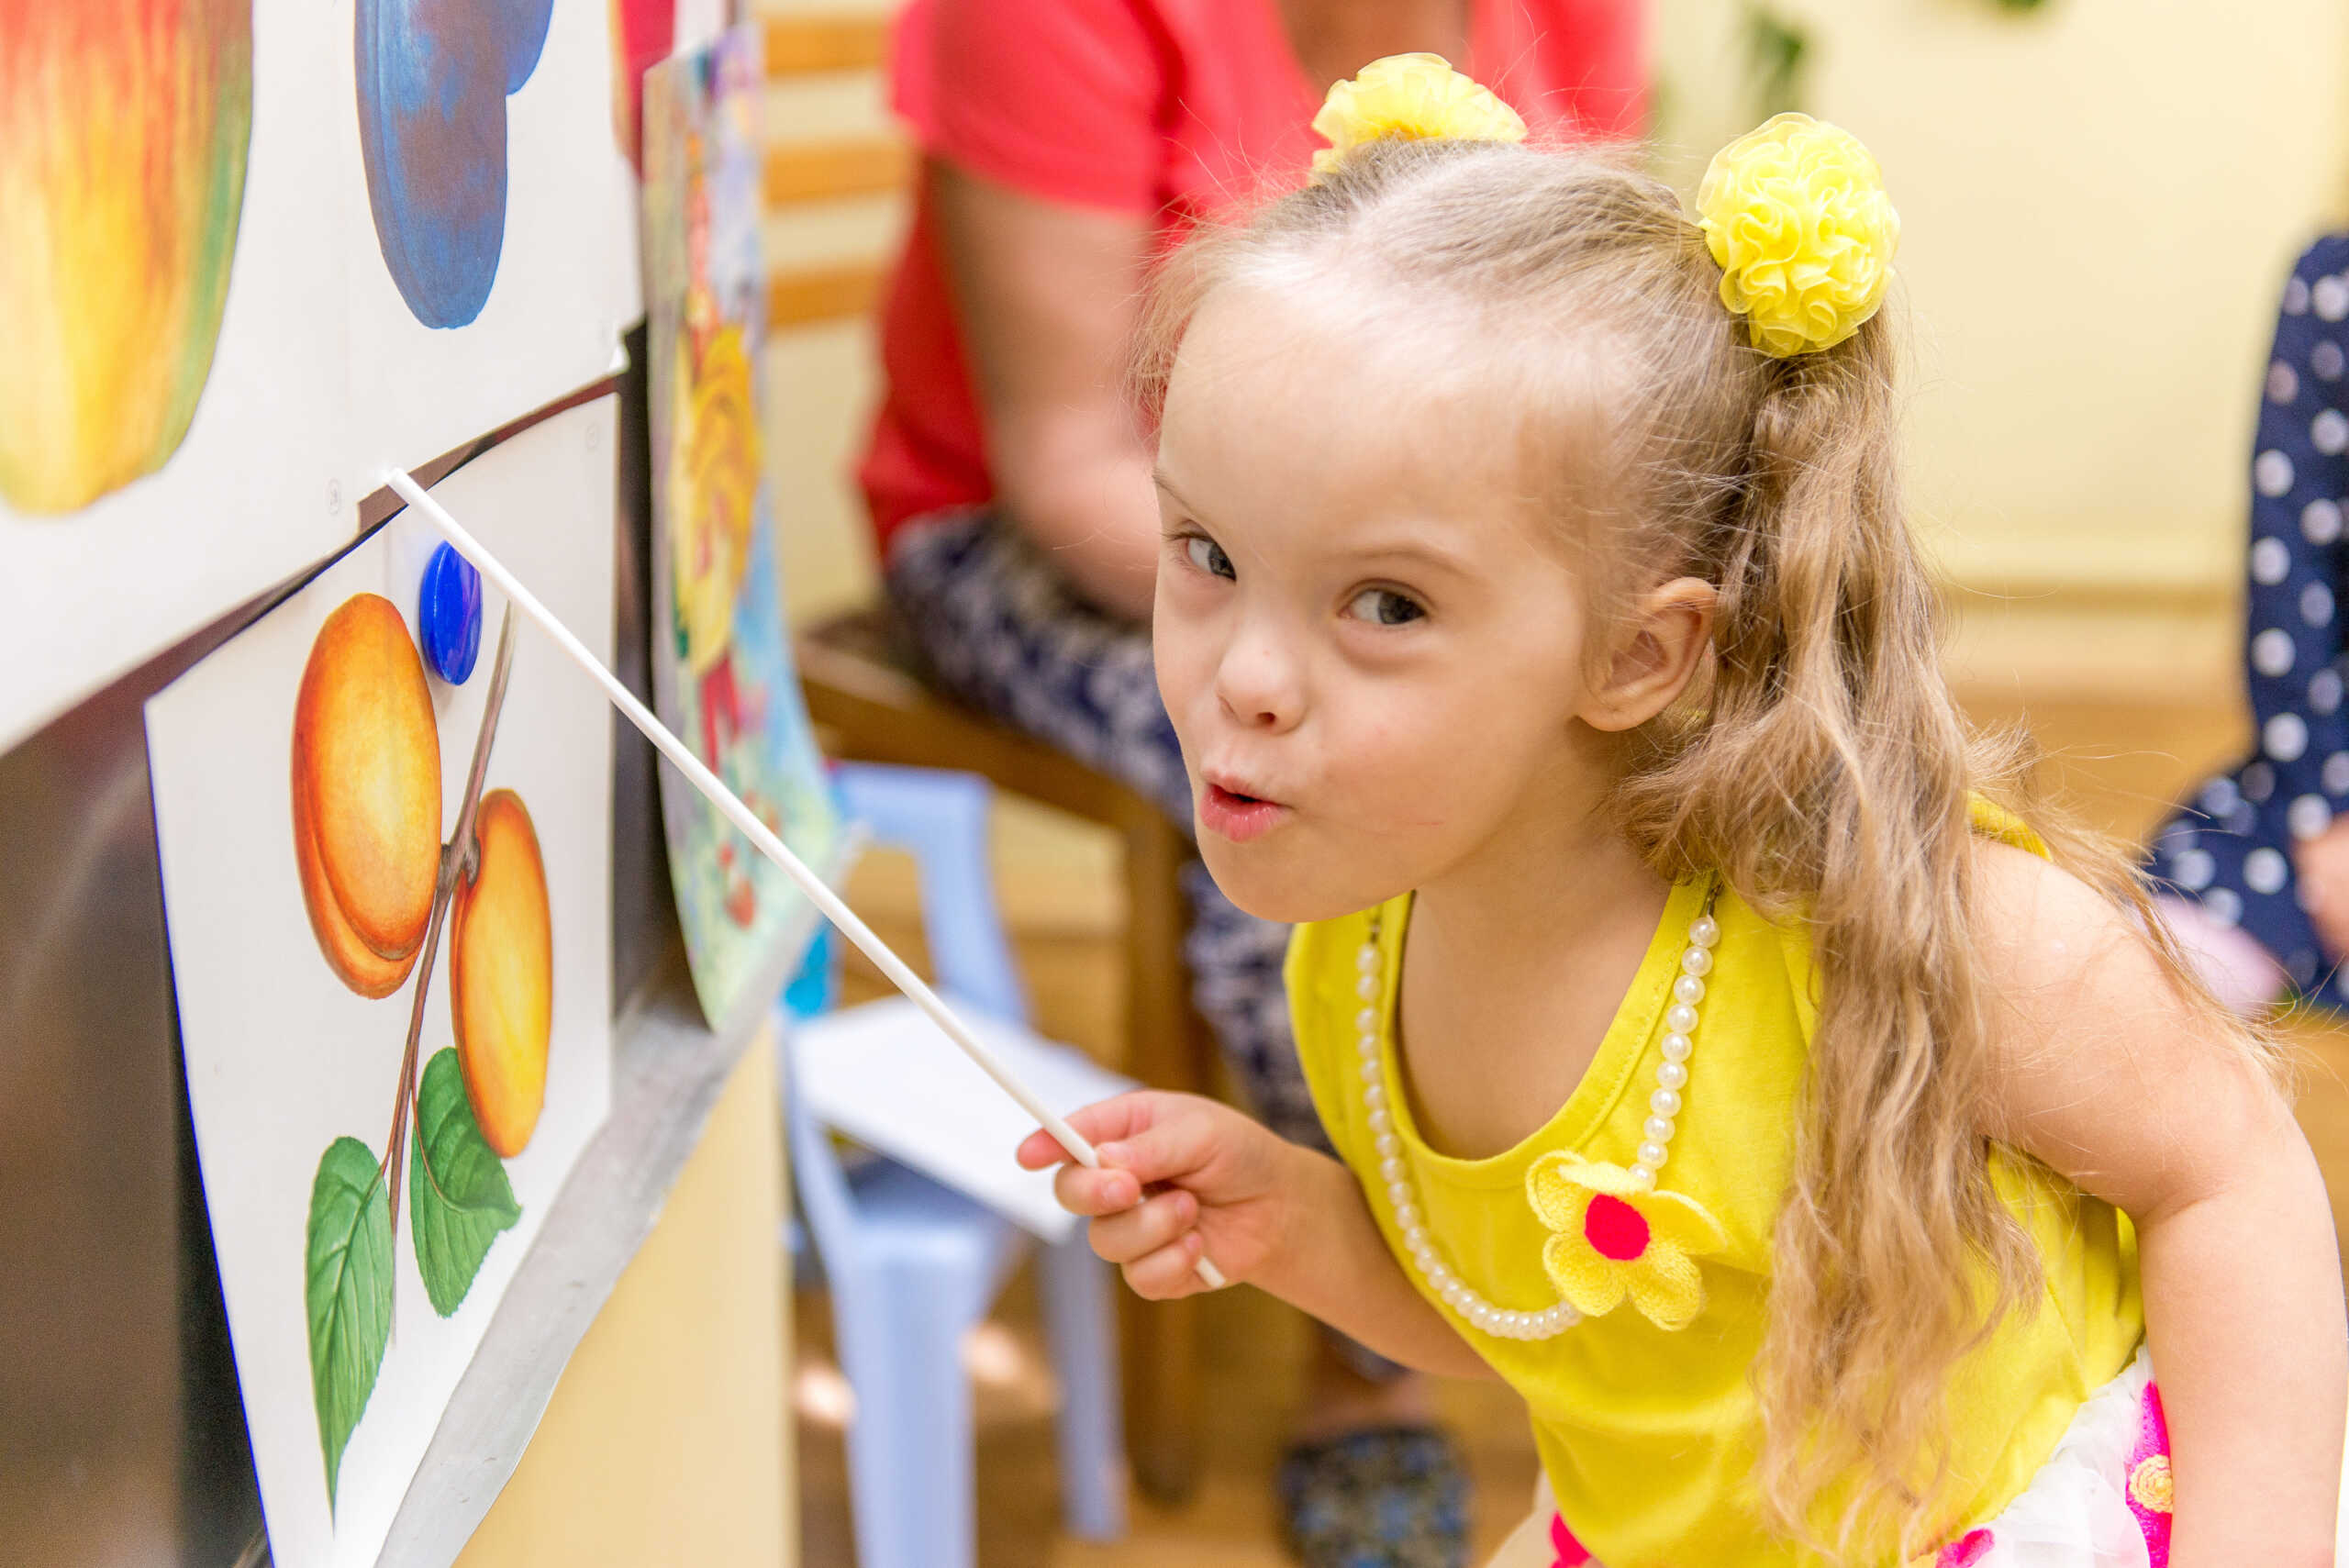 Speech impairment children with Down syndrome